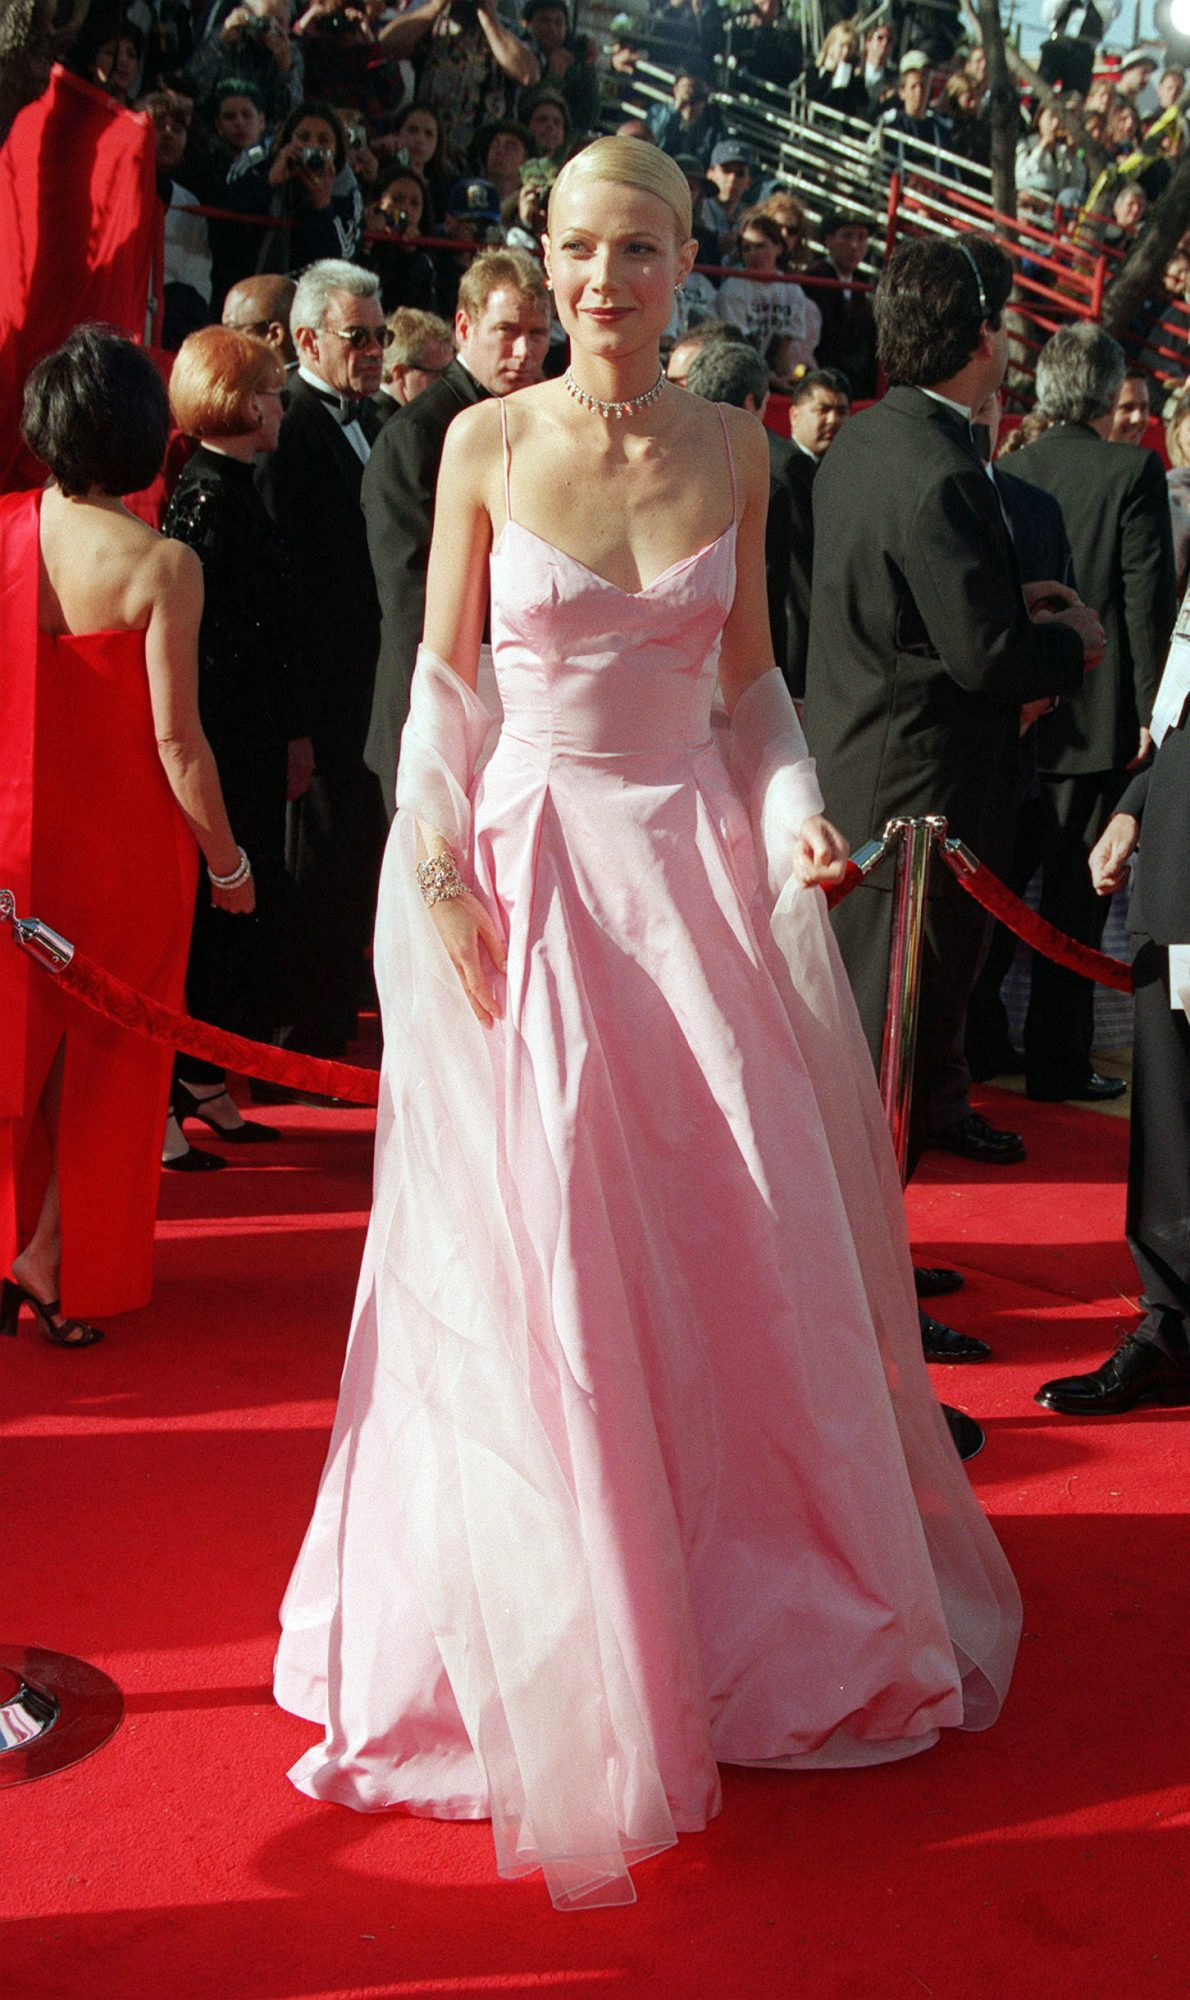 Gwyneth Paltrow's Pretty in Pink Oscars Gown Is Still Major